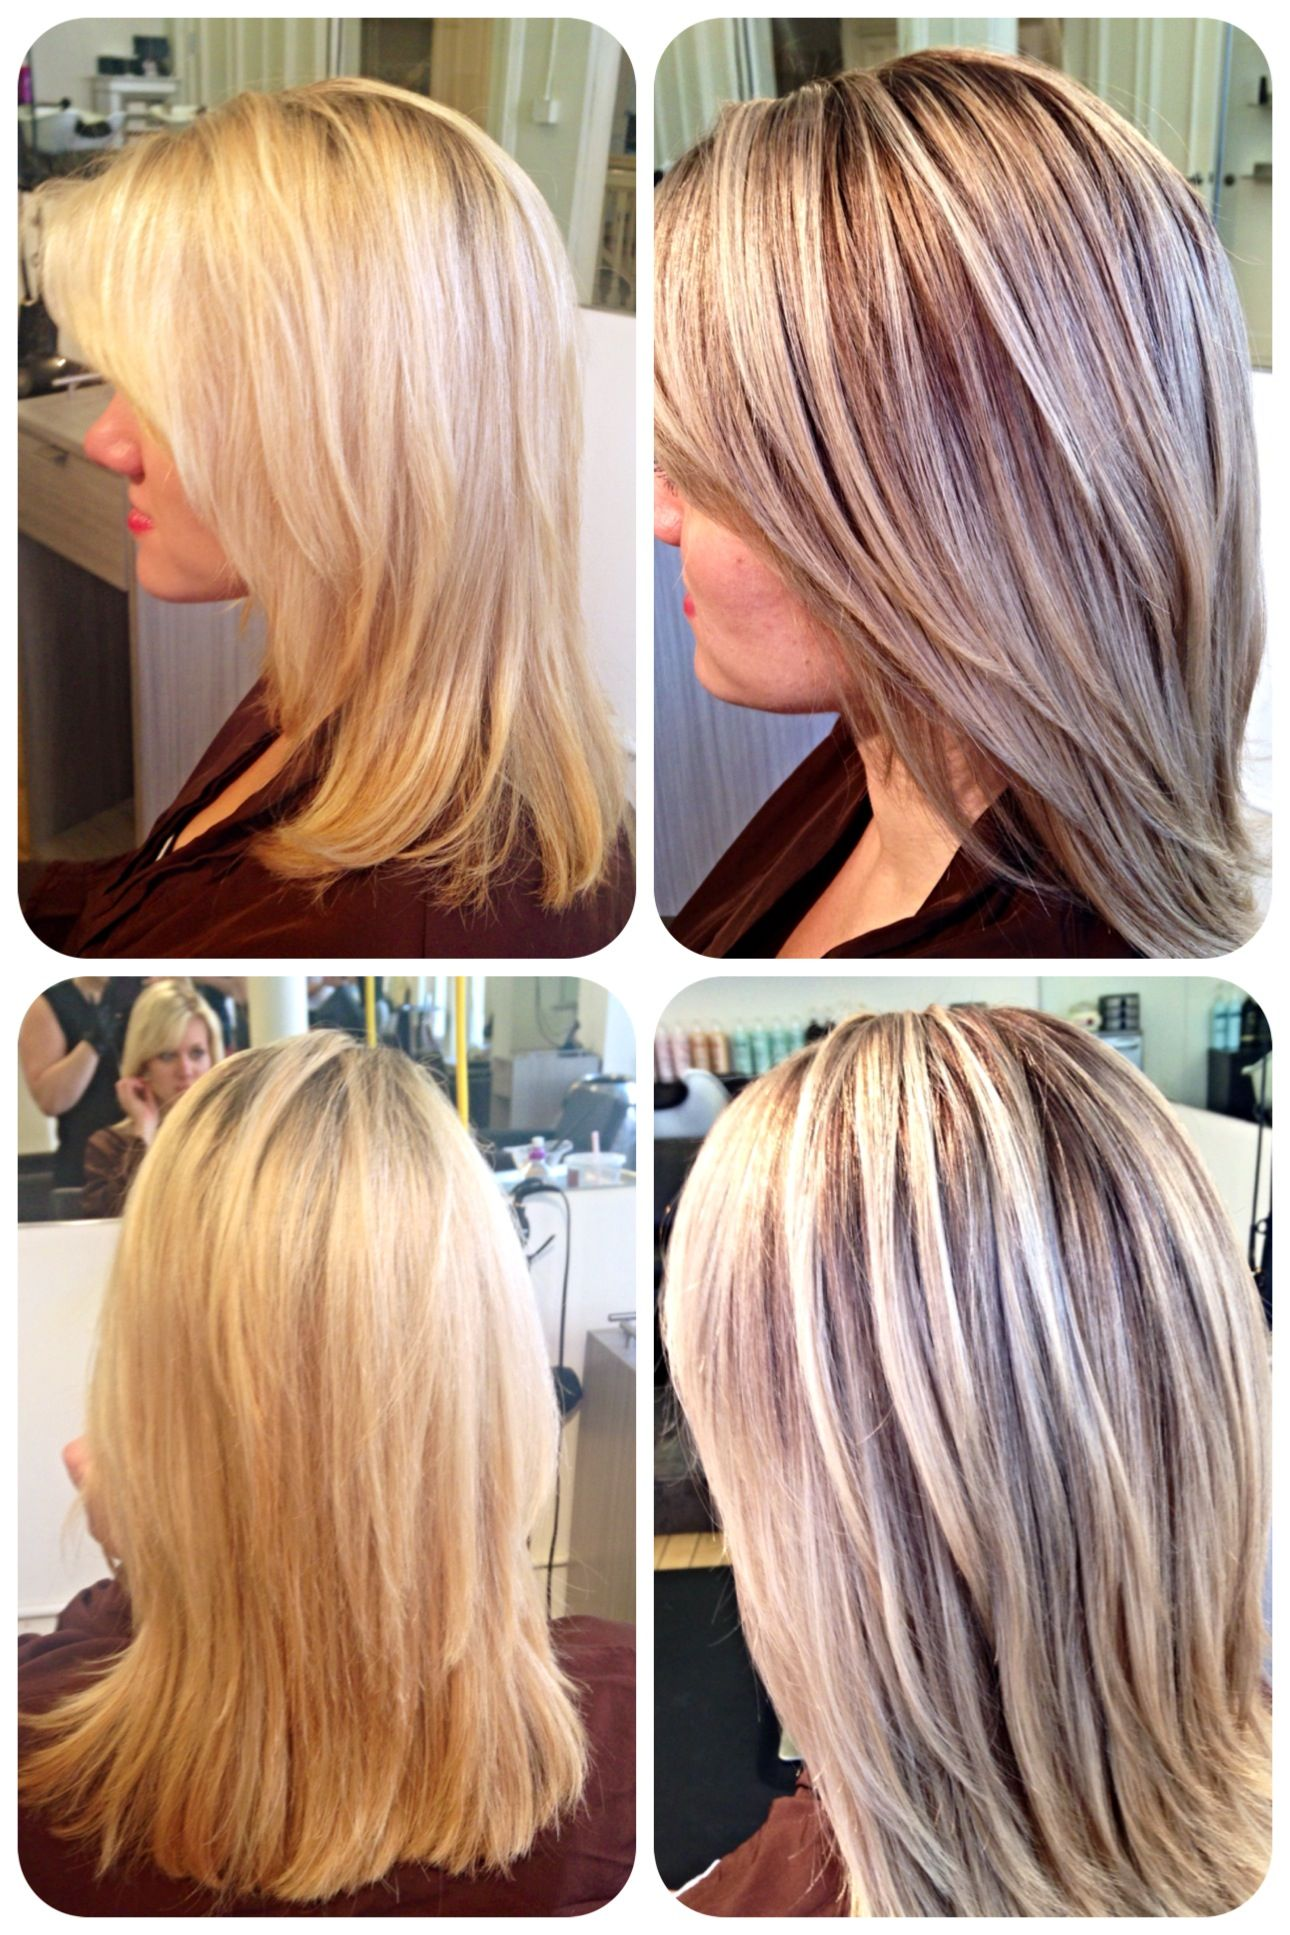 Before And After Bleach Blonde To Painted Highlights And Lowlights